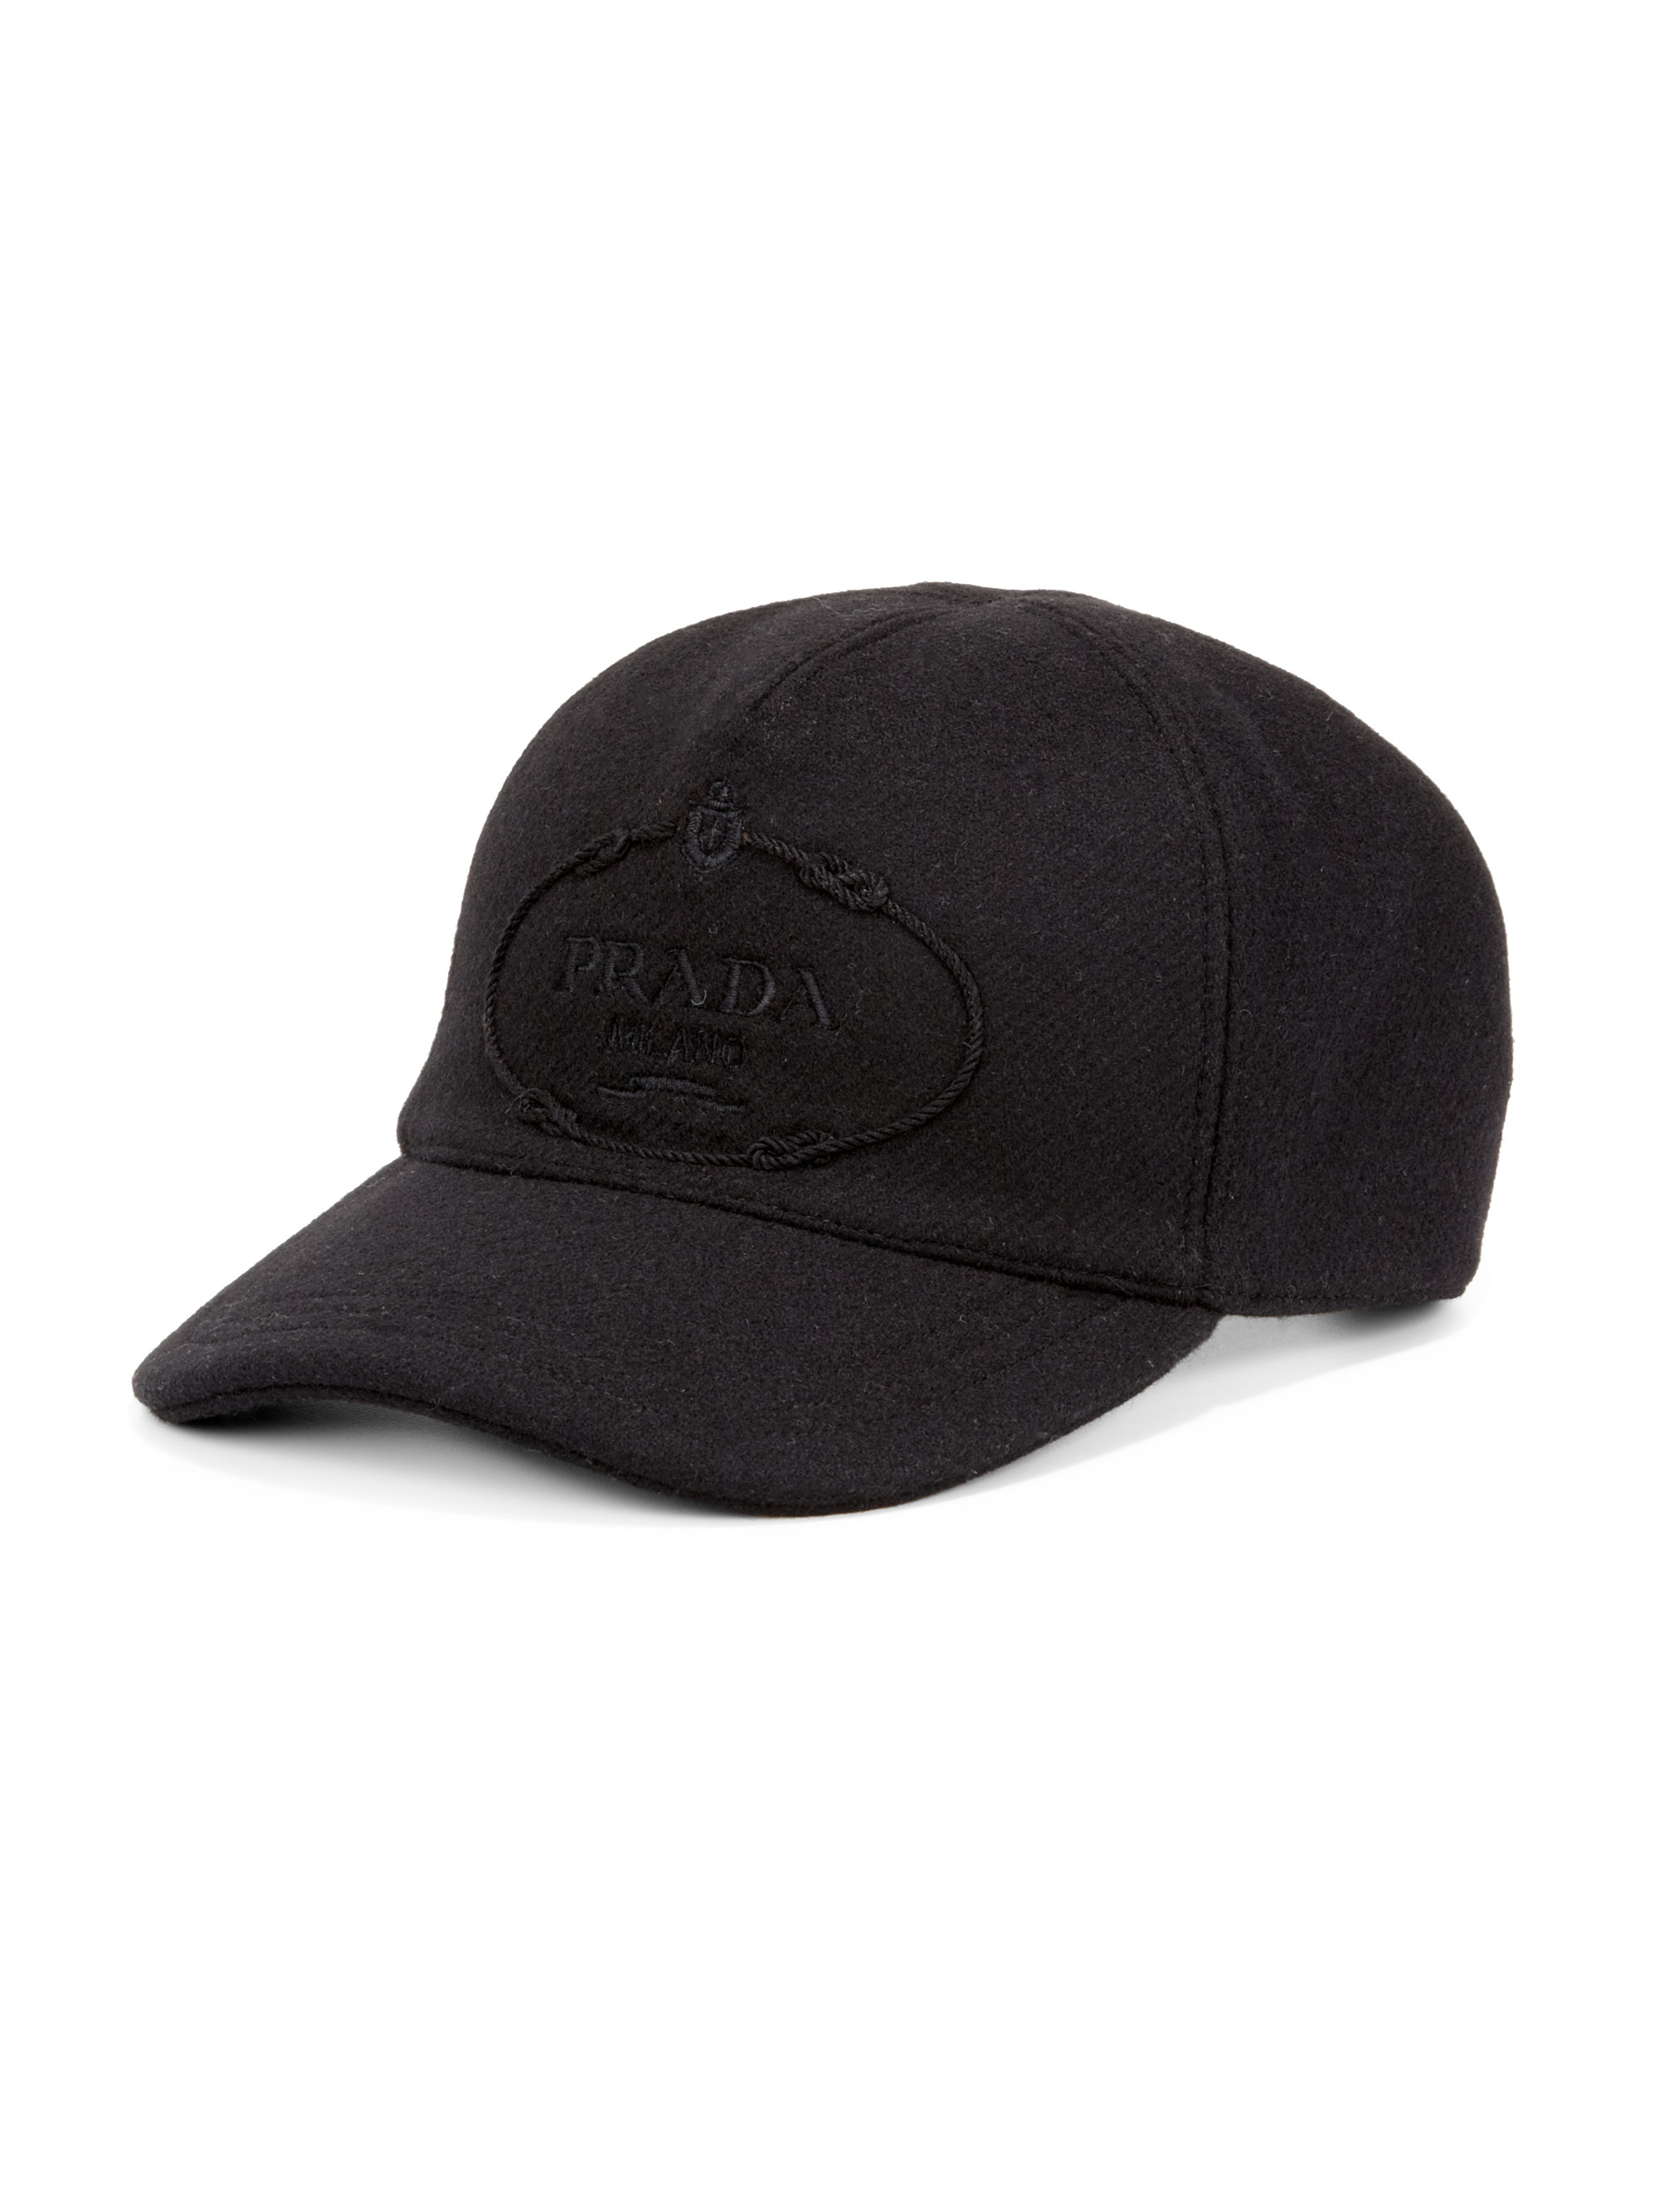 ecdde672bf2 Lyst - Prada Wool Logo Baseball Cap in Black for Men